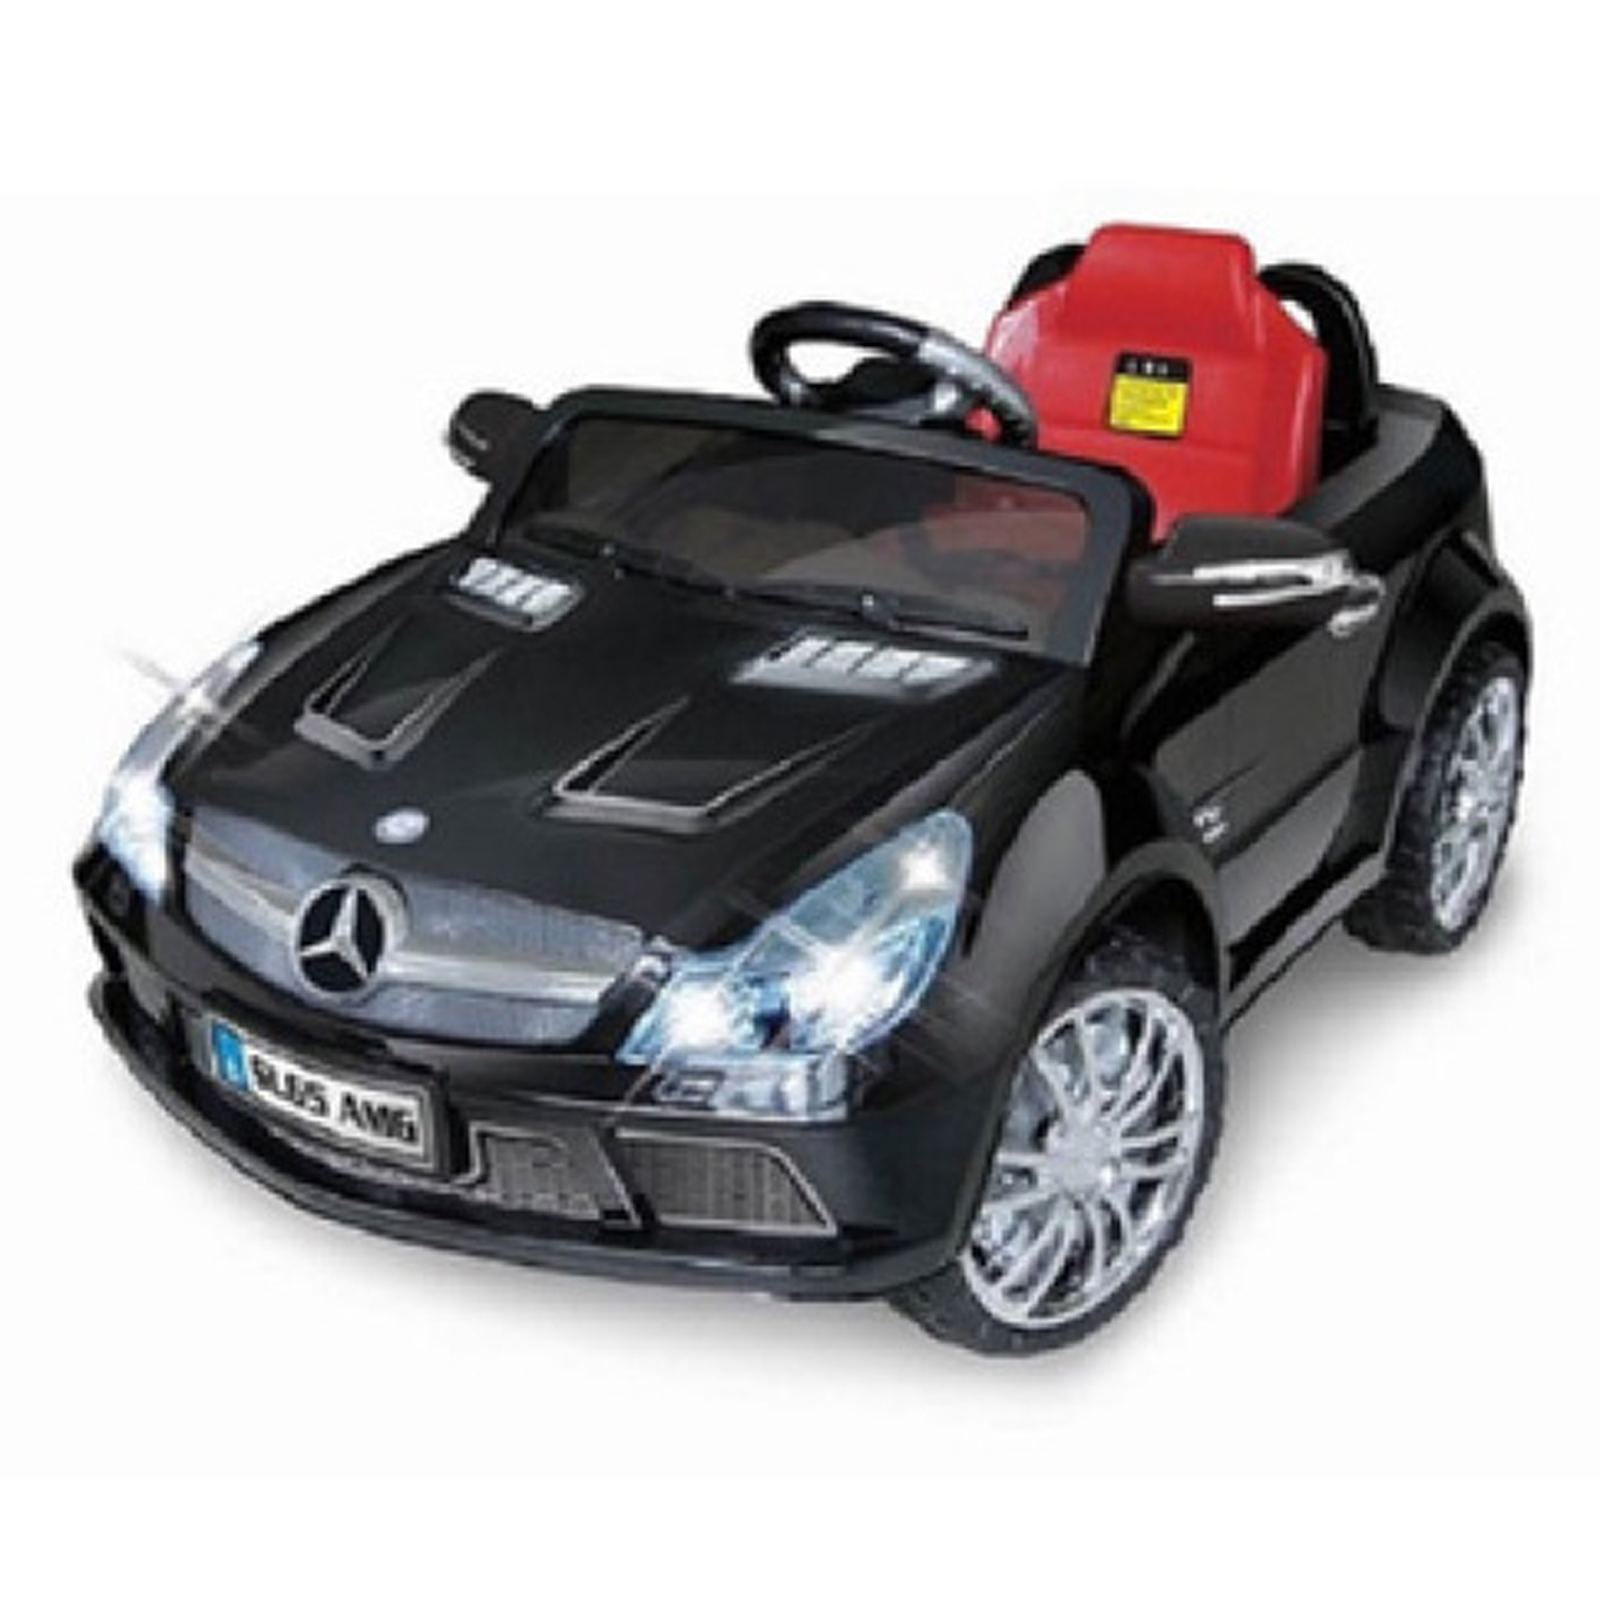 Licensed Mercedes Benz SL-65 12V Kids Battery Powered Ride On Car in Black